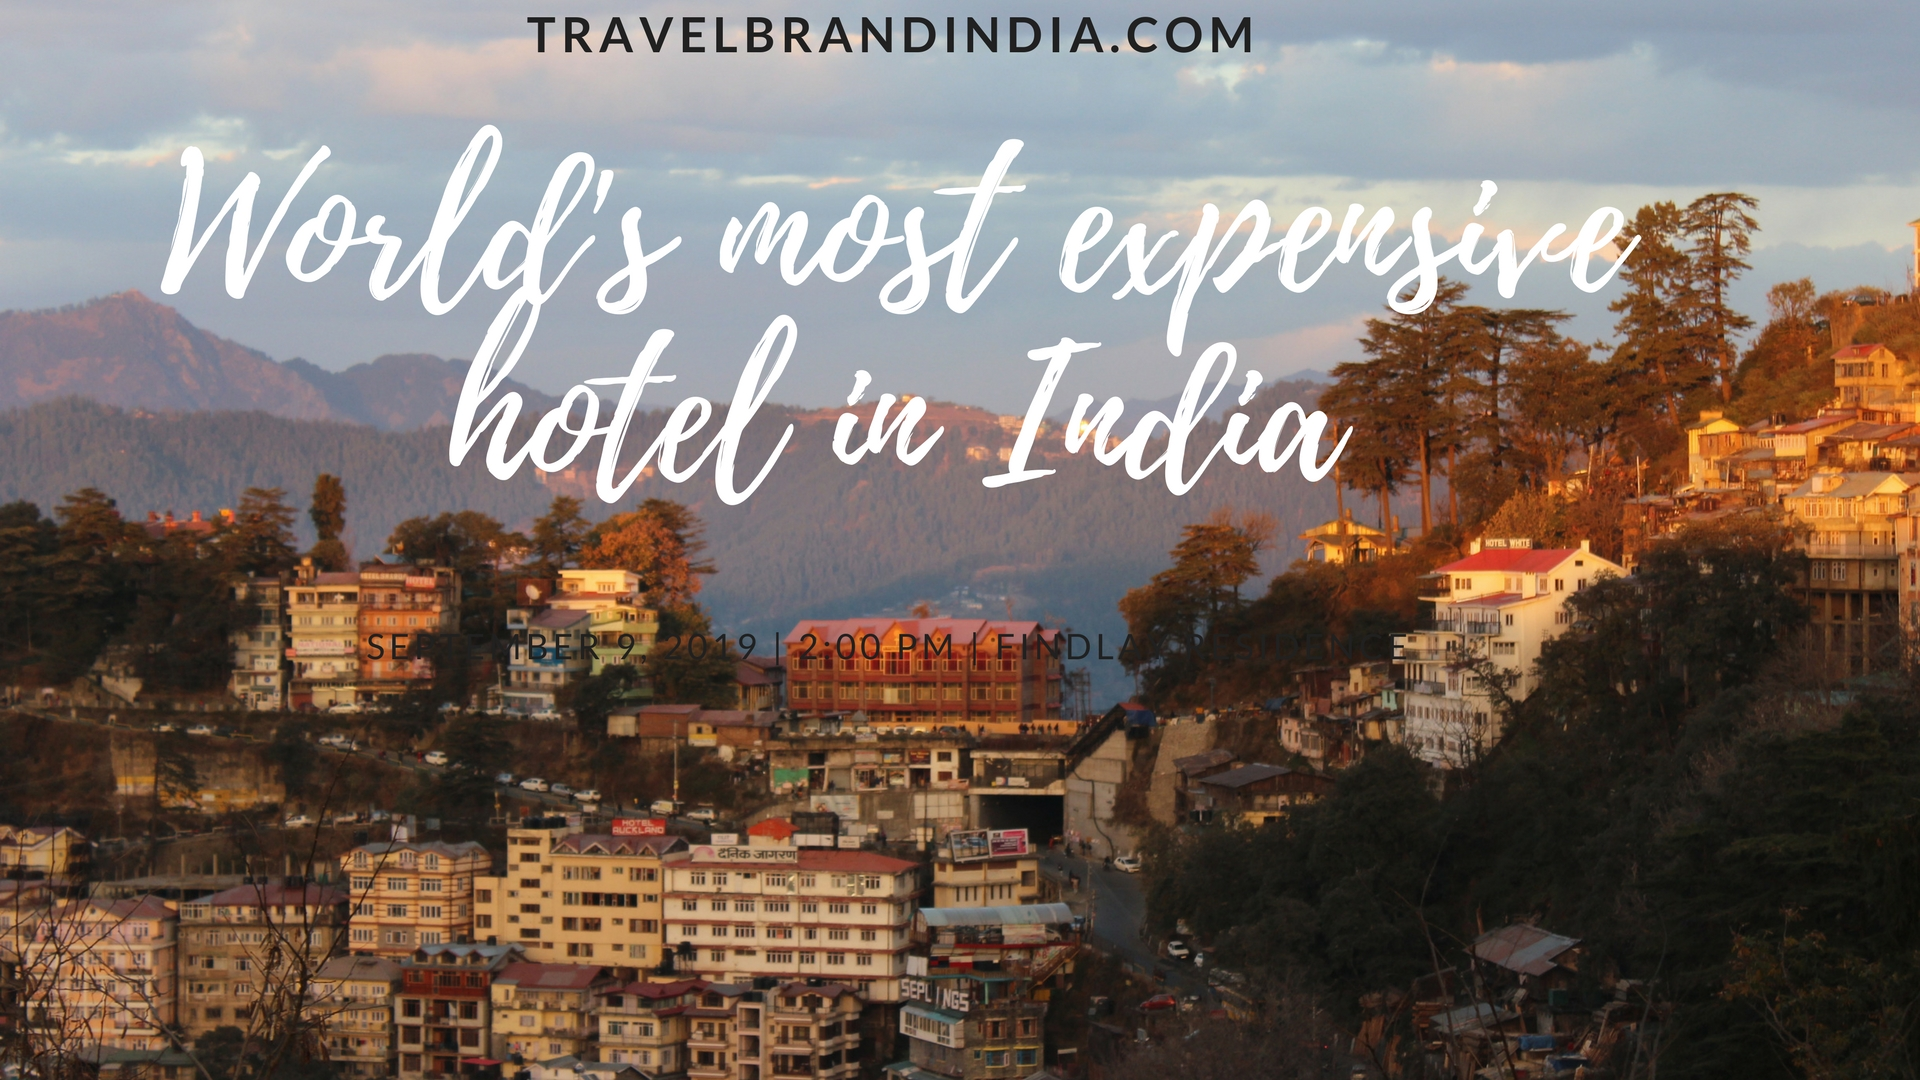 most expensive hotel in India